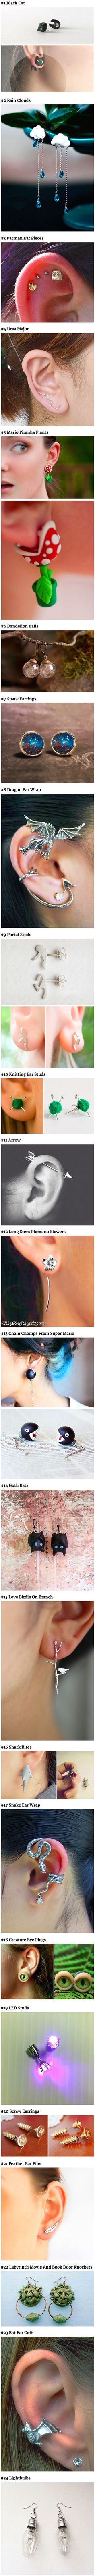 Here are some cool and creative earrings that geeks would love.